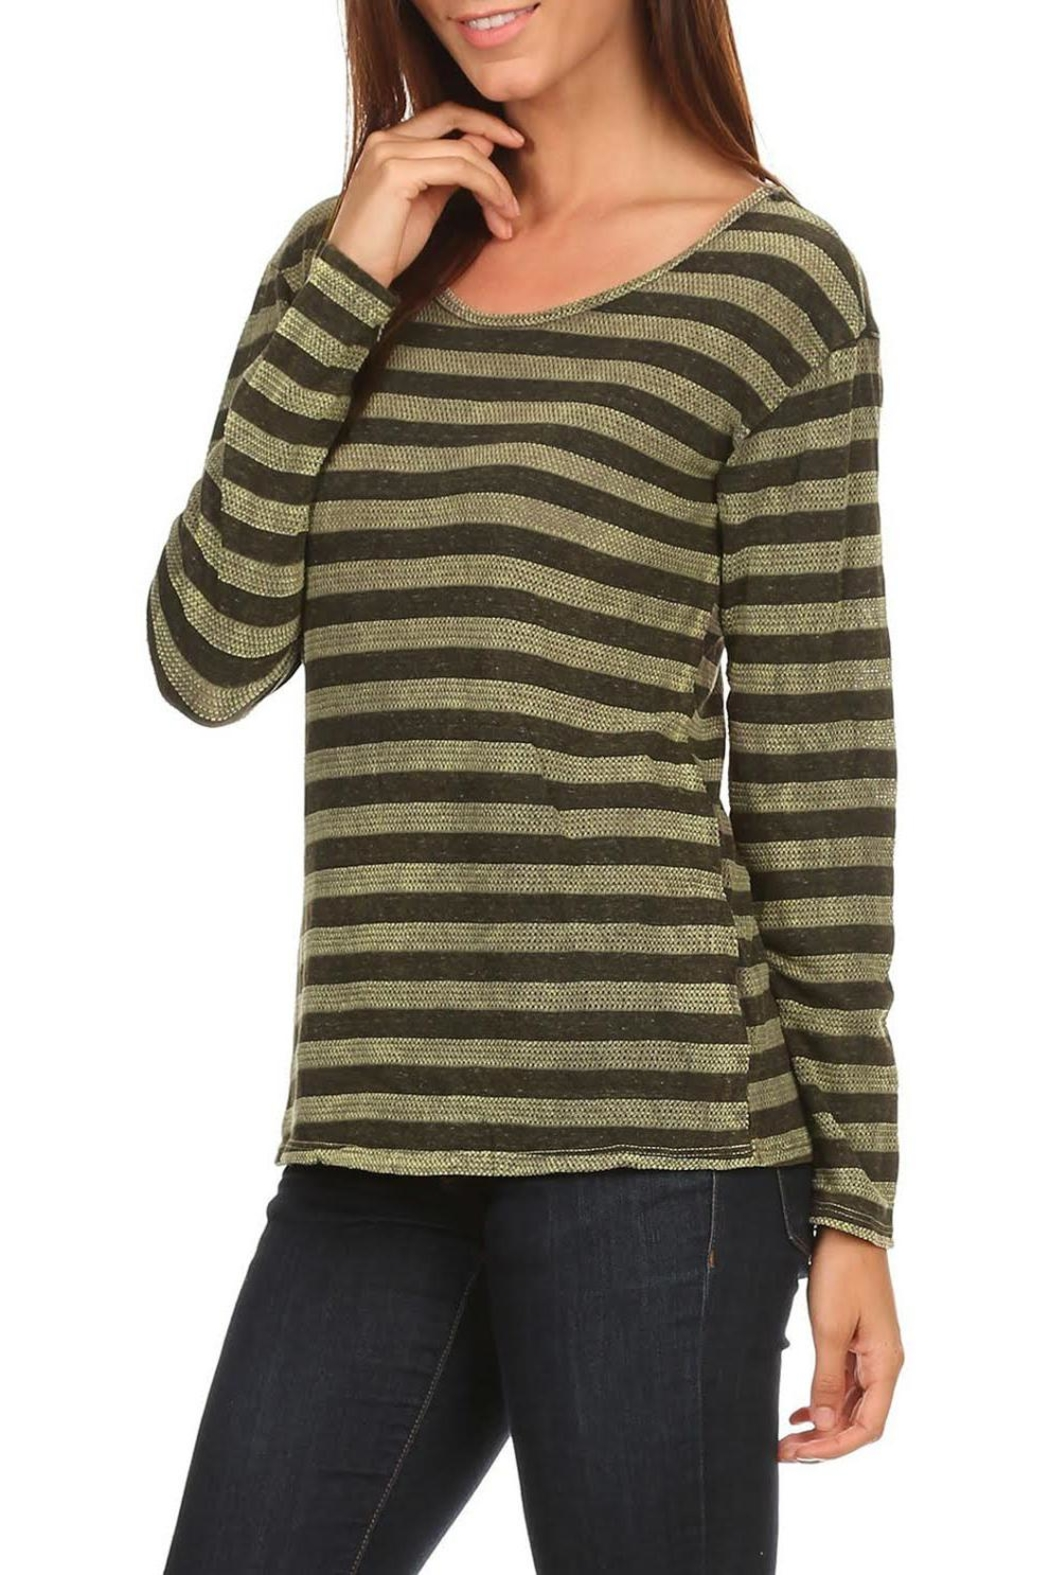 T Party Olive-Striped Long-Sleeve Tee - Main Image